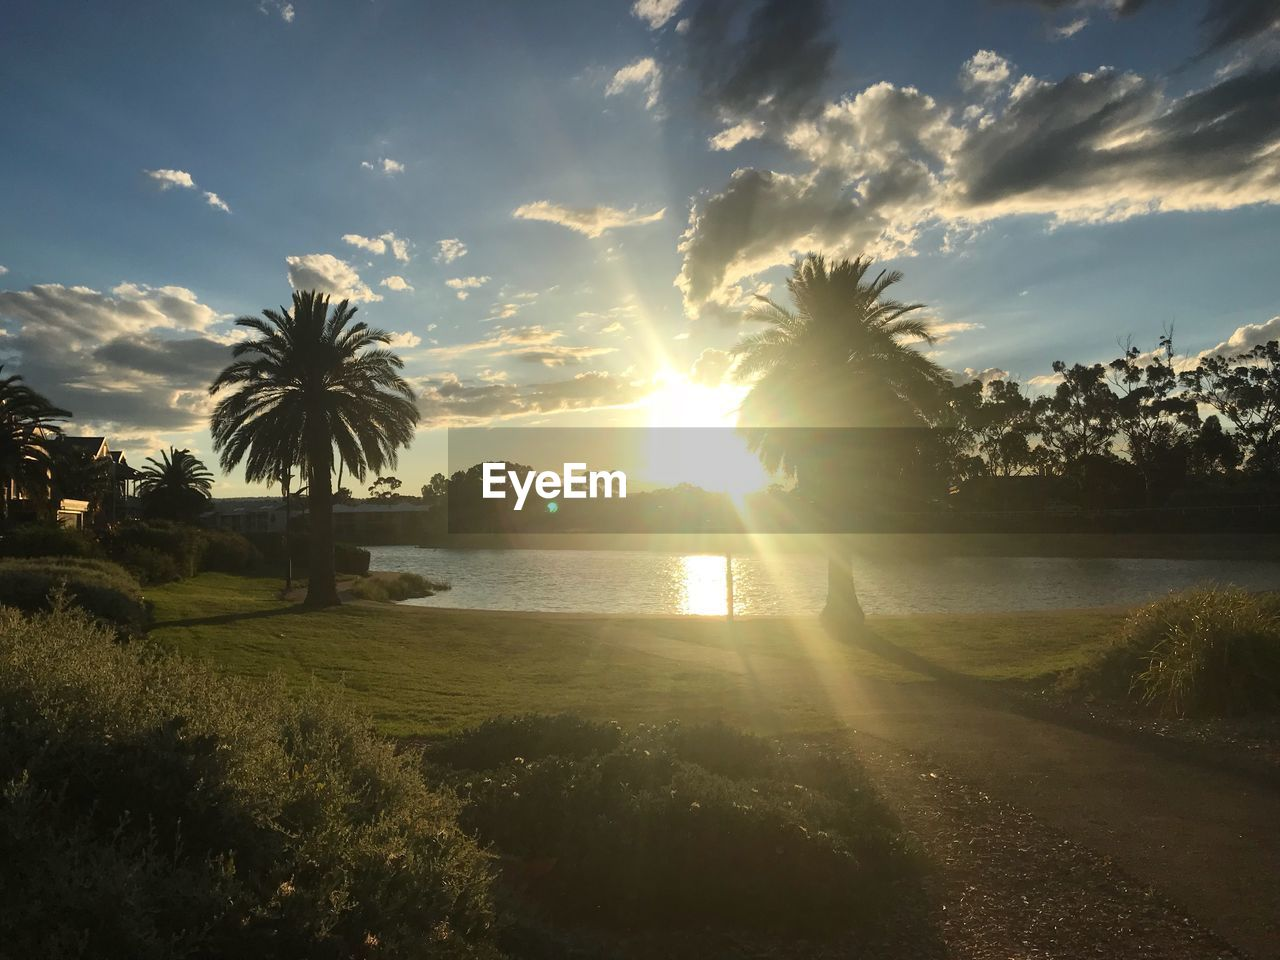 sky, beauty in nature, plant, water, cloud - sky, sunset, tree, scenics - nature, tranquil scene, tranquility, palm tree, nature, sun, tropical climate, land, sunbeam, sunlight, no people, growth, outdoors, lens flare, coconut palm tree